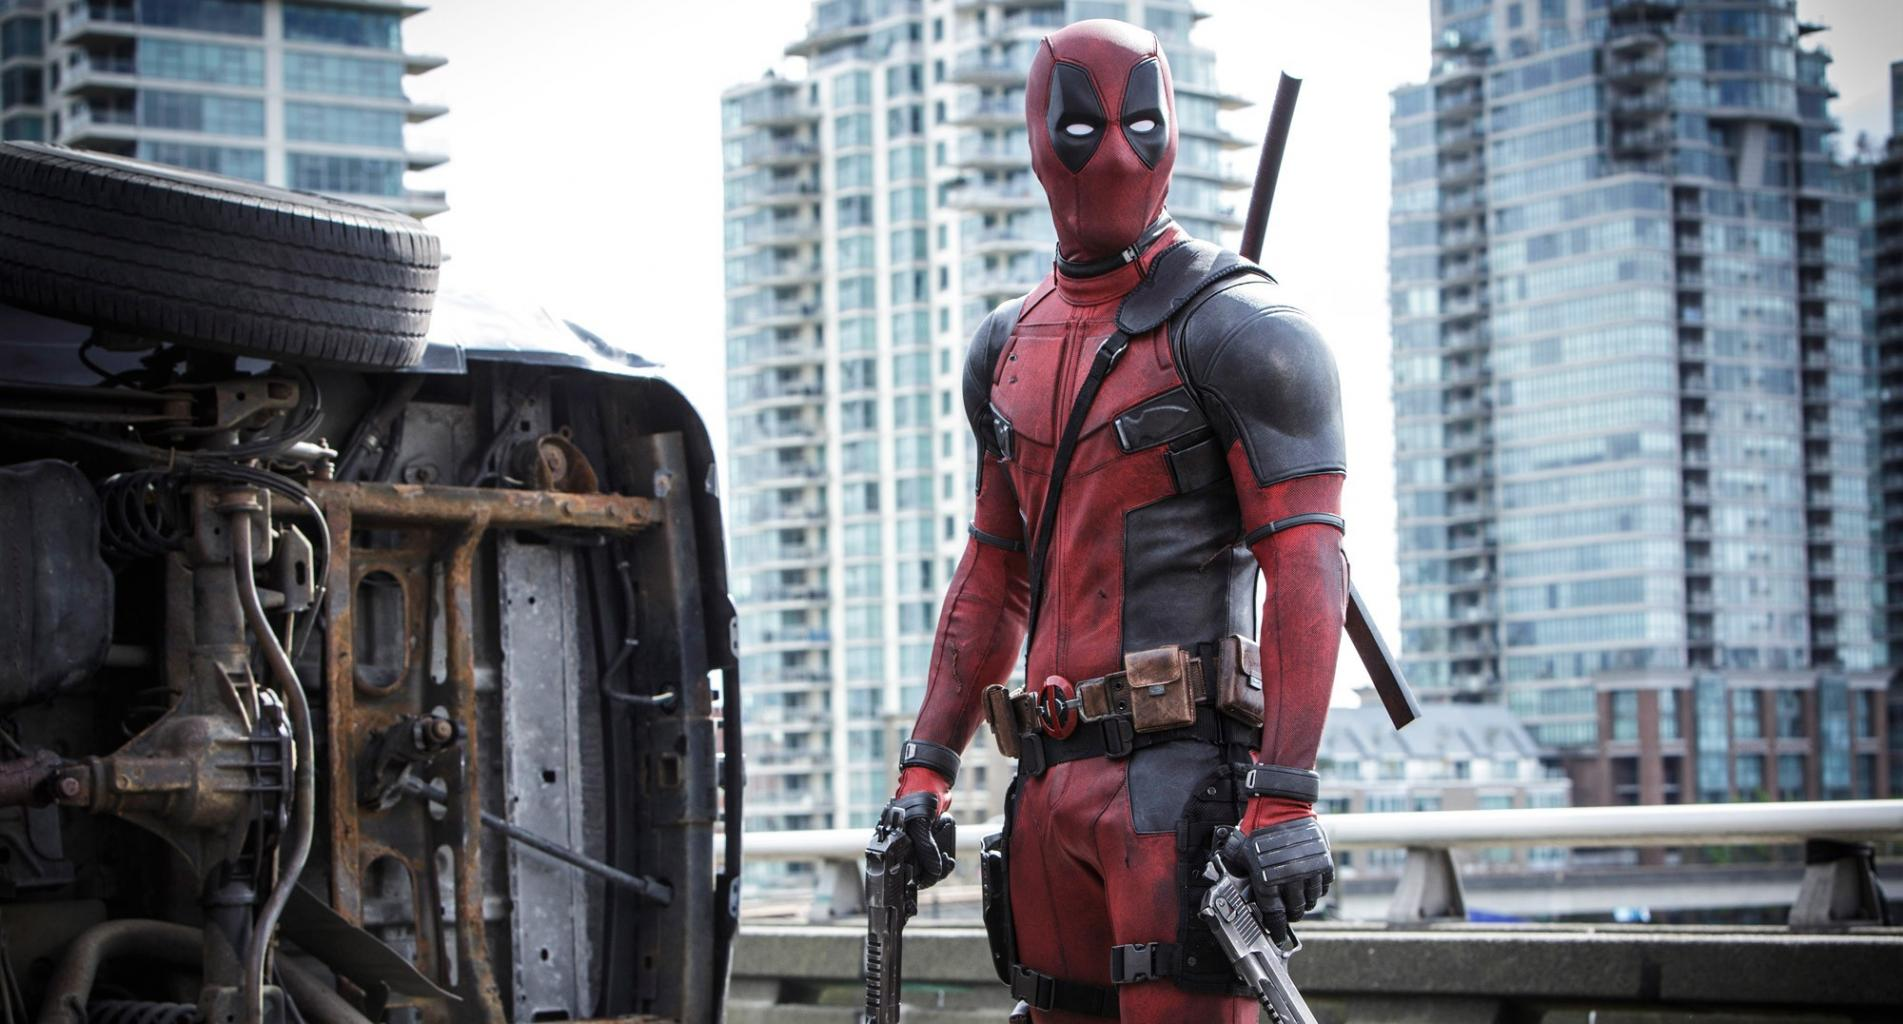 'Deadpool 2' Filming Takes Over Vancouver's Gastown Neighbourhood